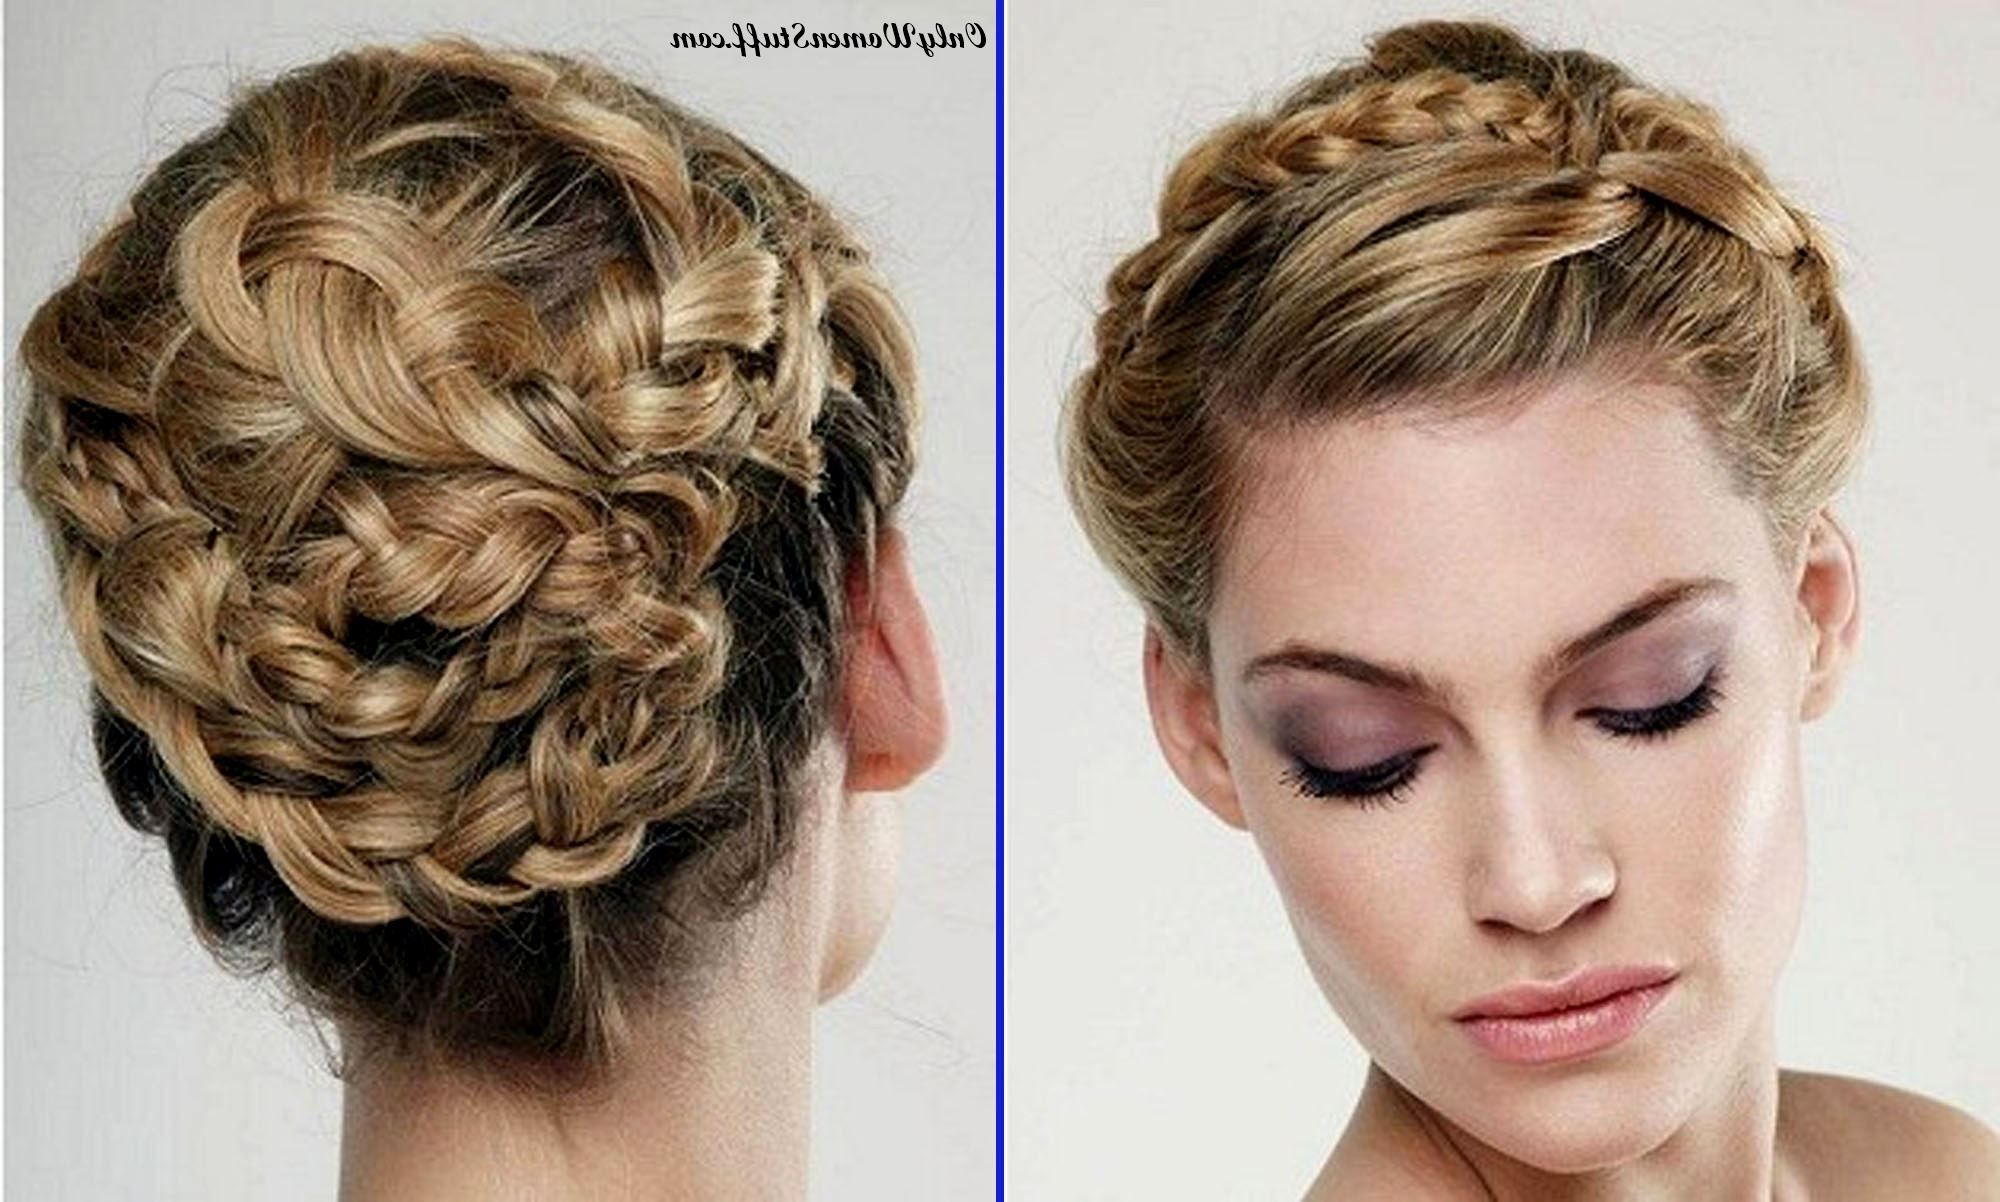 50+ Easy Prom Hairstyles & Updos Ideas (stepstep) Within Famous Cute Medium Hairstyles For Prom (View 4 of 20)